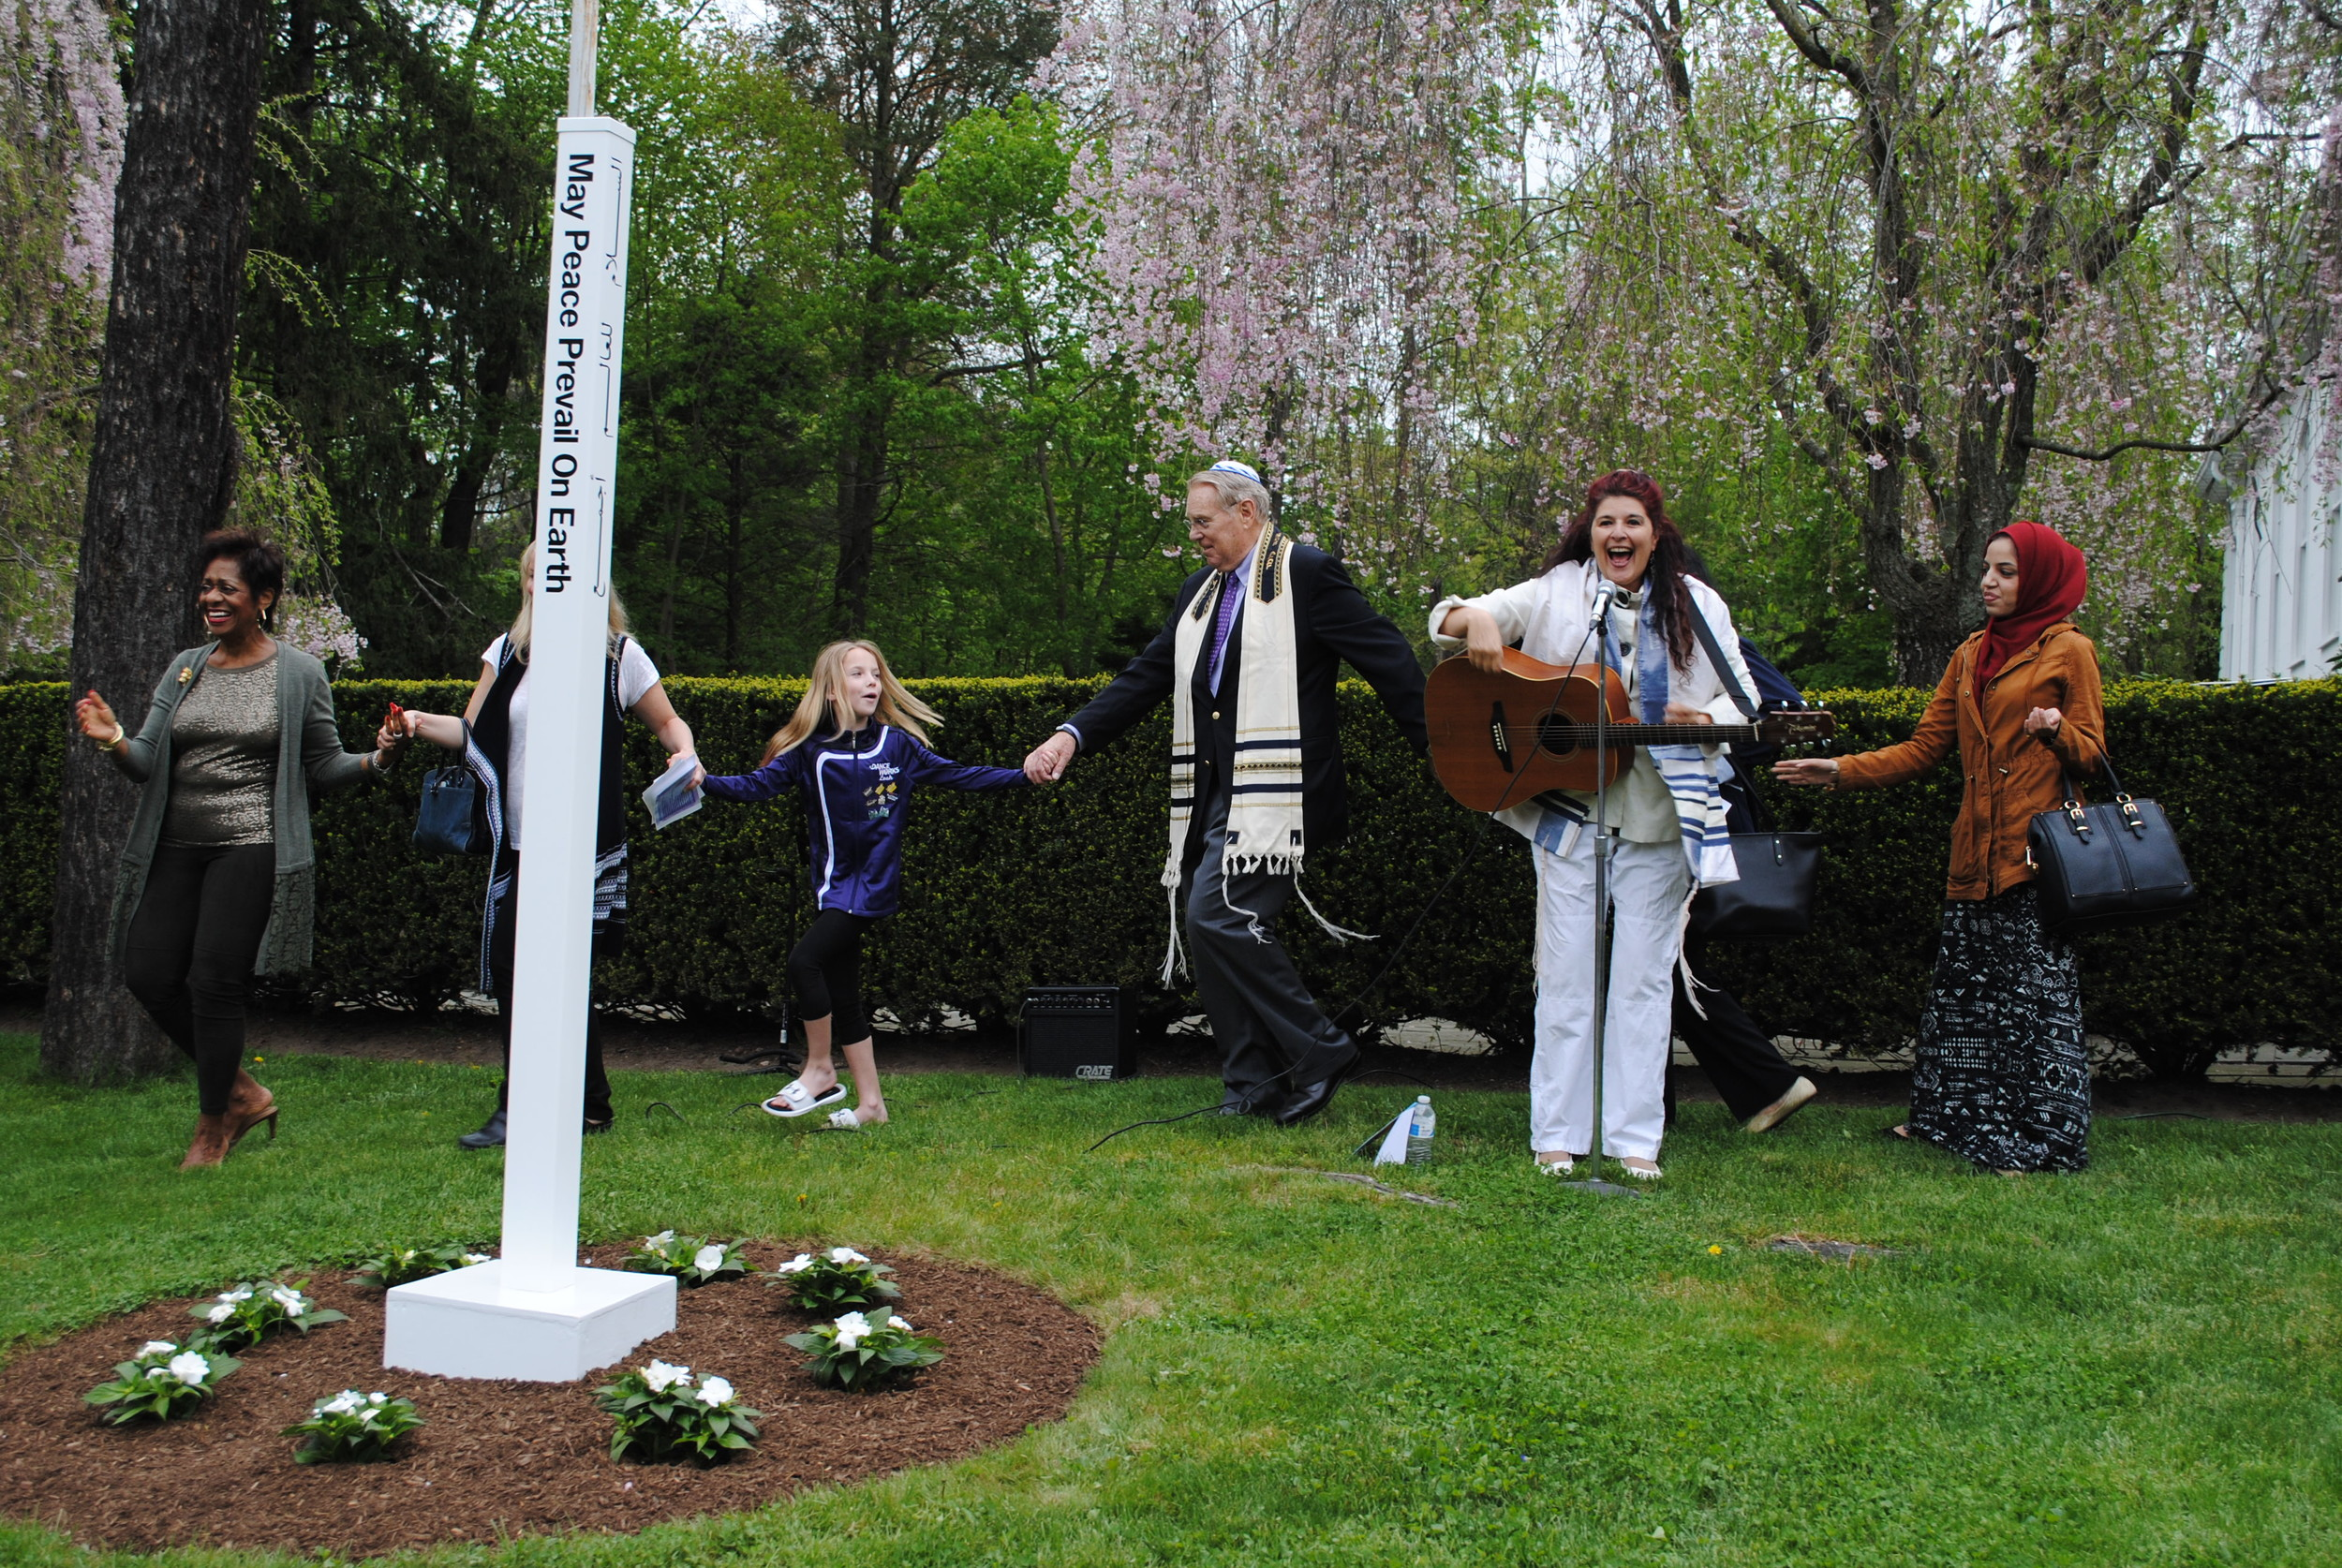 Cantor Irene Failenbogen, who sang several traditional Jewish songs, inspired everyone to dance in celebration of the Peace Pole.